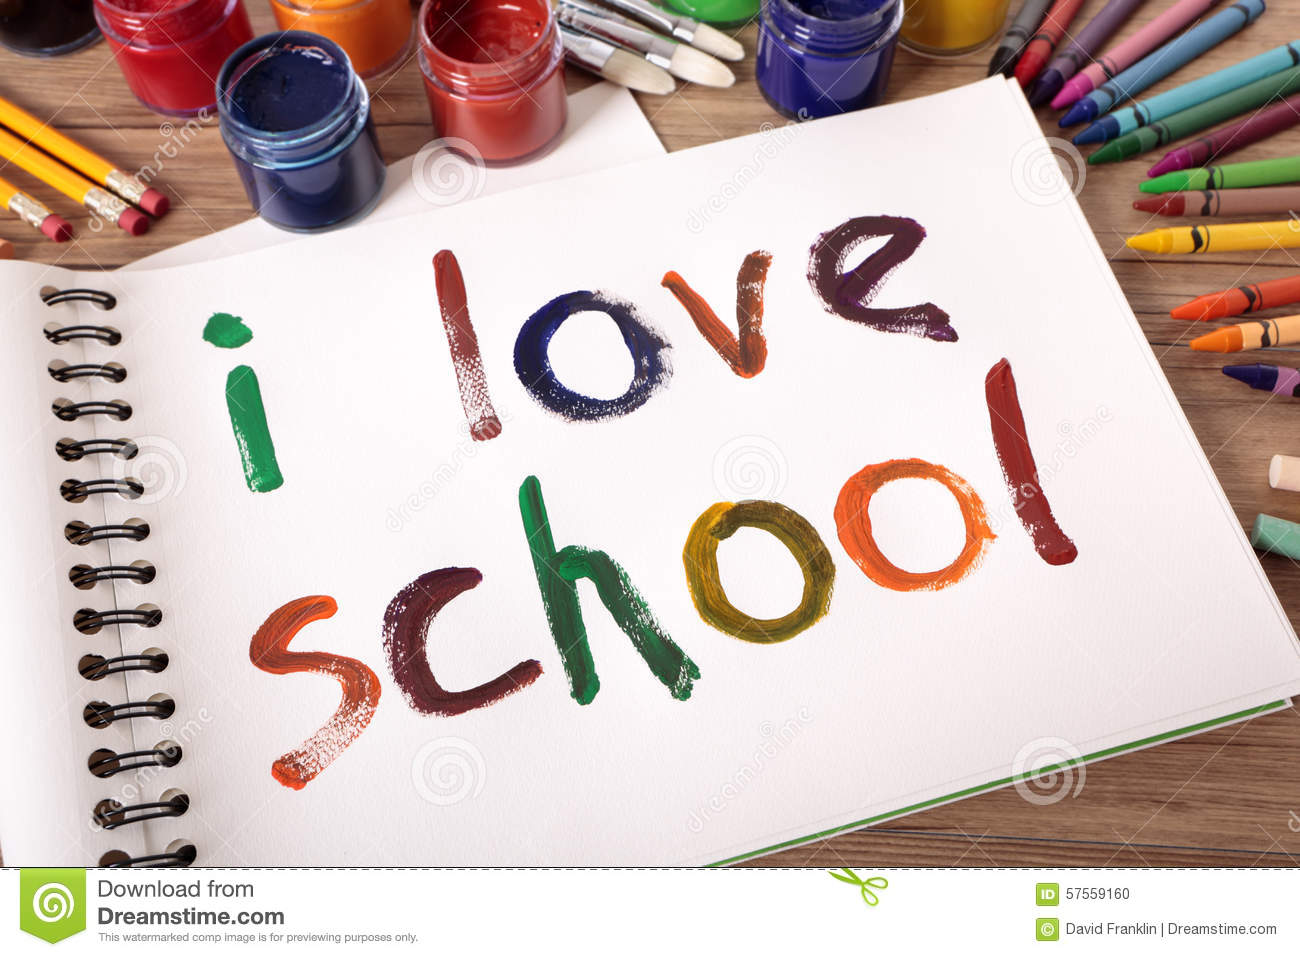 how i became to love school How to enjoy school three parts: making new friends keeping it fun making school easier community q&a school doesn't have to be a prison whether you find school difficult, boring, or just plain stressful, you can learn to make school easier and a lot more fun learn some concrete strategies for making school easier, making friends, and keeping it fun.